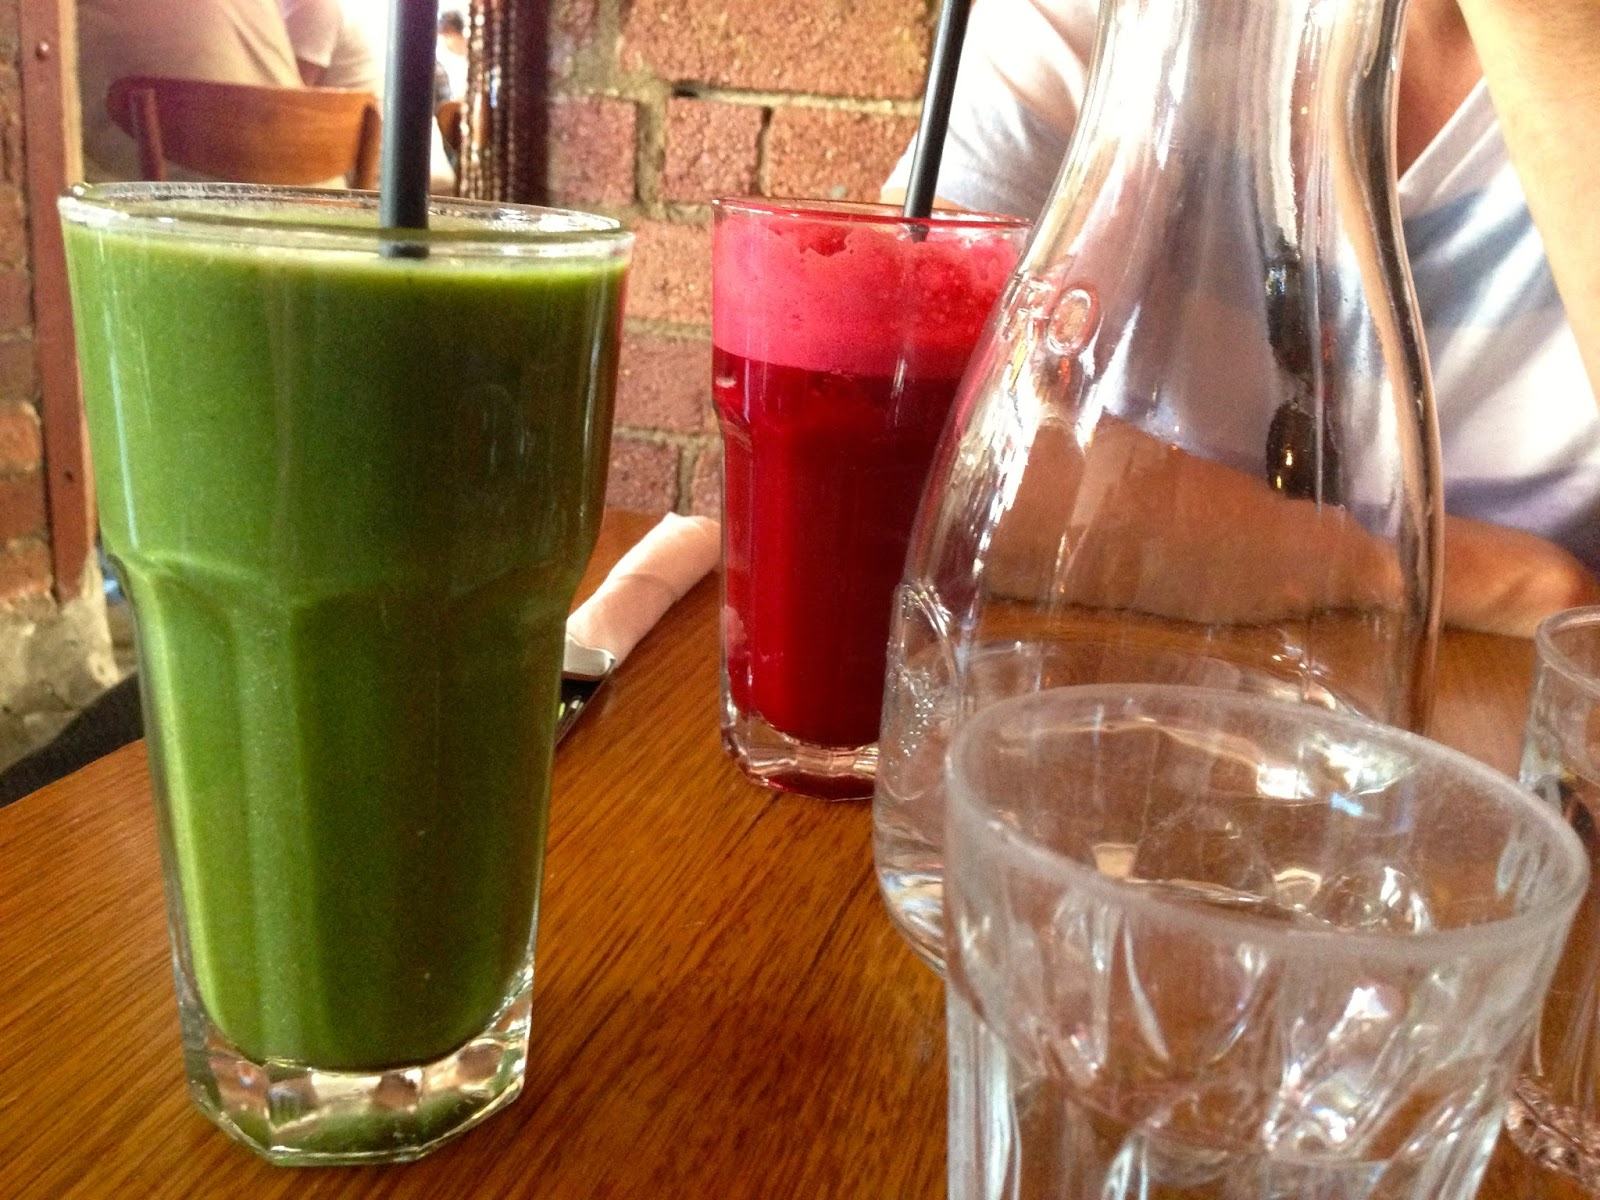 Vegie Bar, Fitzroy - Green smoothie and Cleansing juice